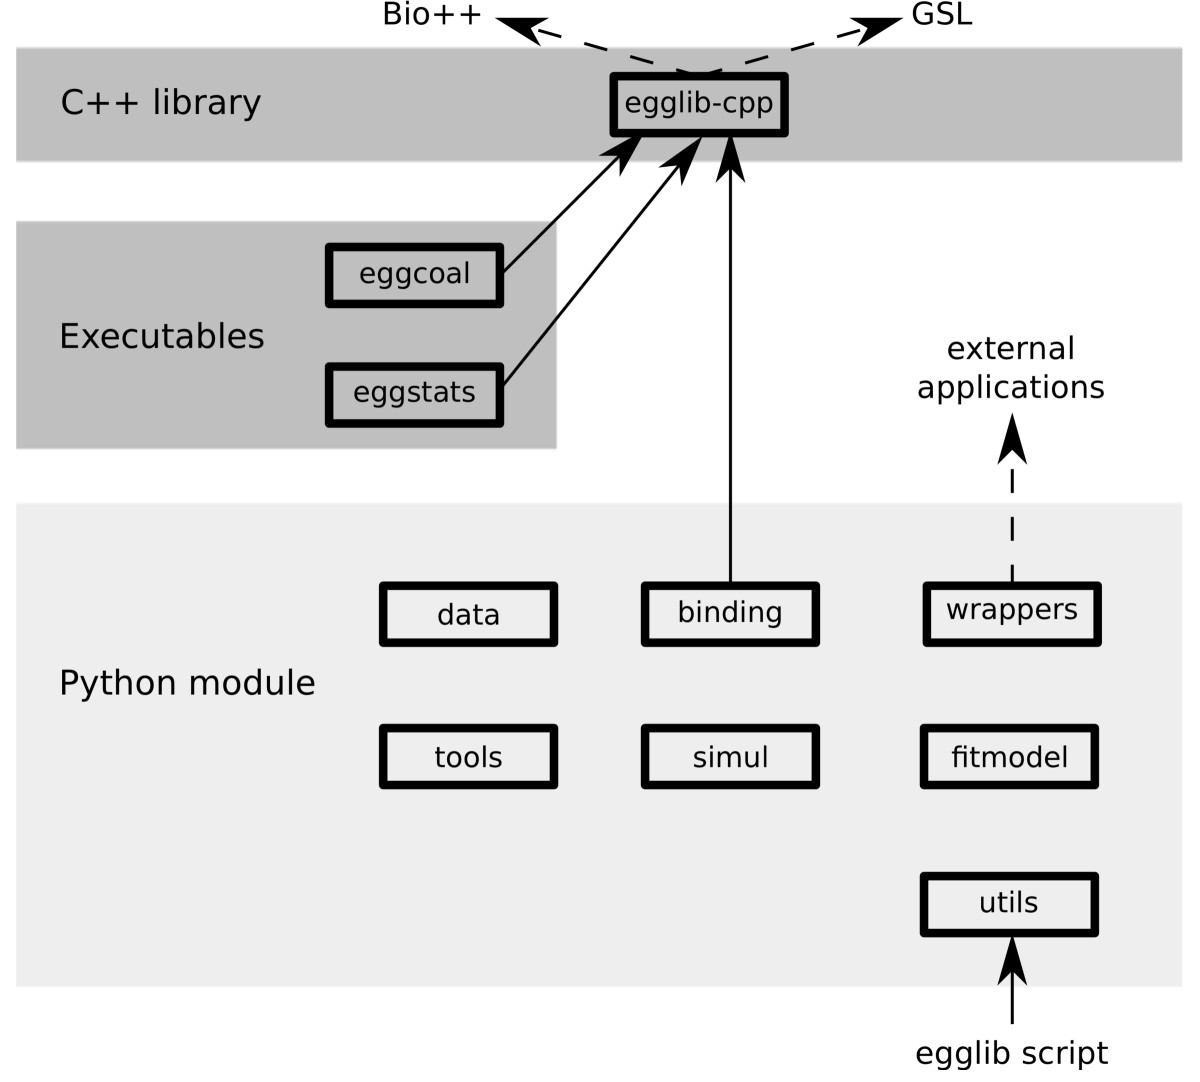 https://static-content.springer.com/image/art%3A10.1186%2F1471-2156-13-27/MediaObjects/12863_2011_Article_984_Fig1_HTML.jpg